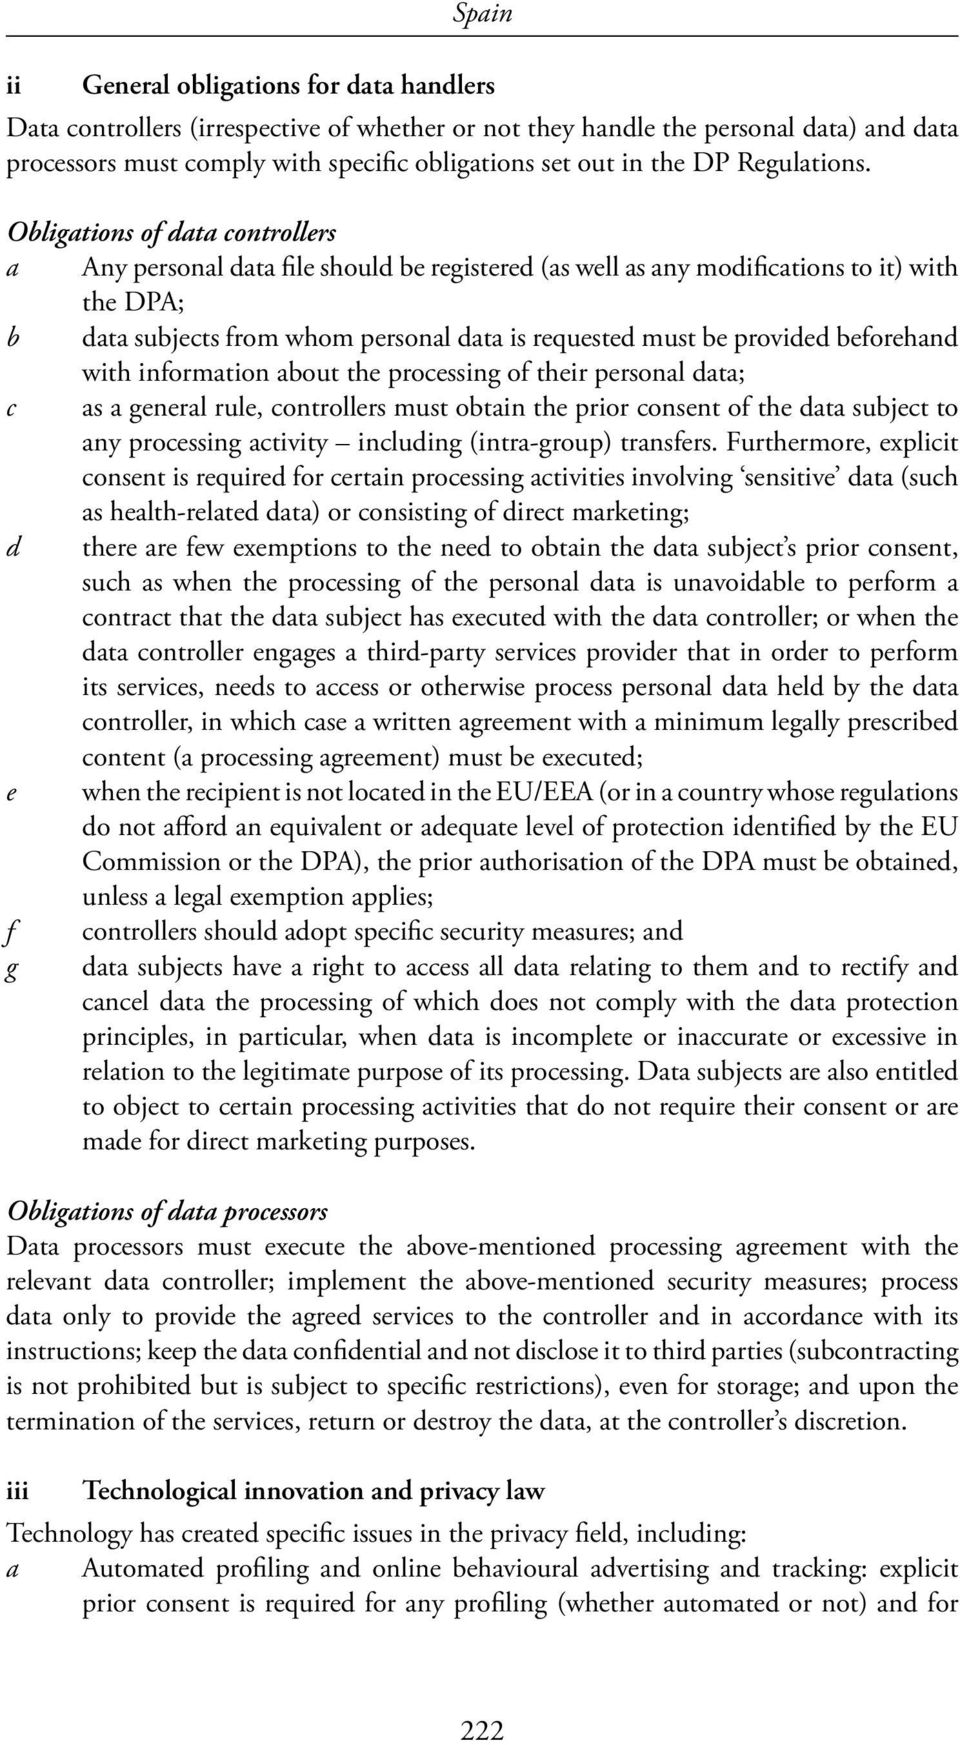 Obligations of data controllers a Any personal data file should be registered (as well as any modifications to it) with the DPA; b data subjects from whom personal data is requested must be provided